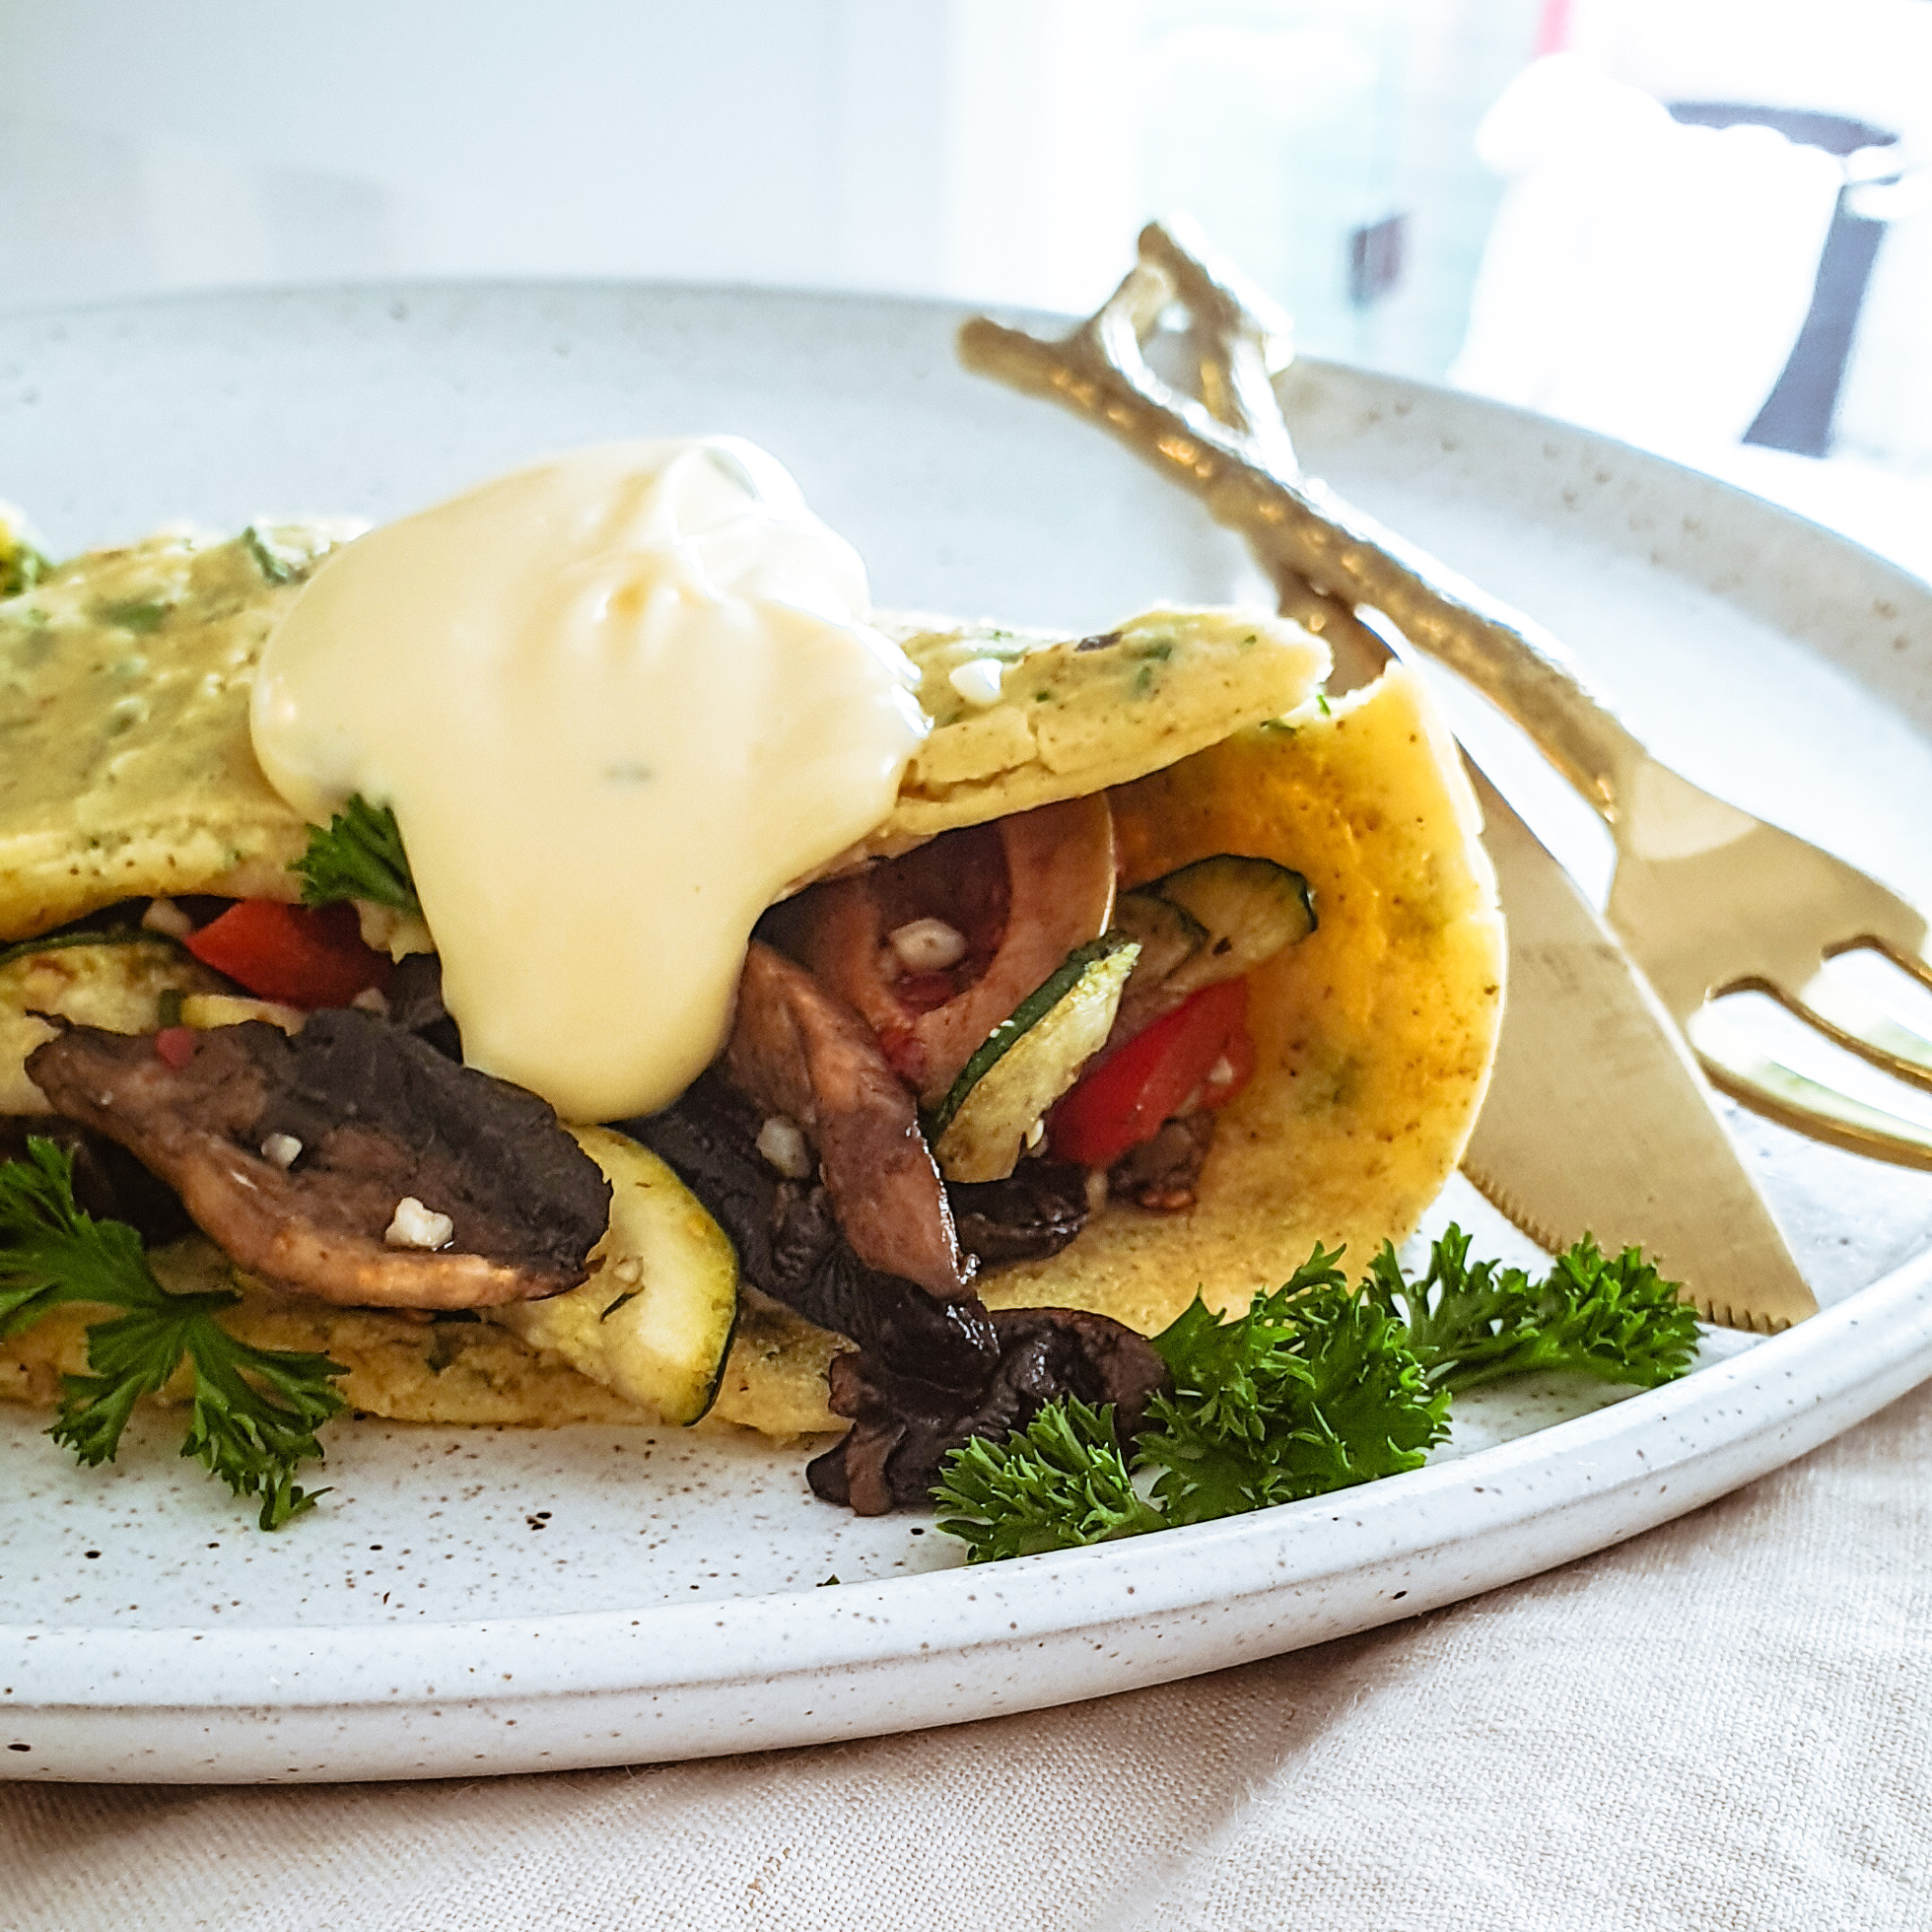 Savoury Crepes & Hollandaise